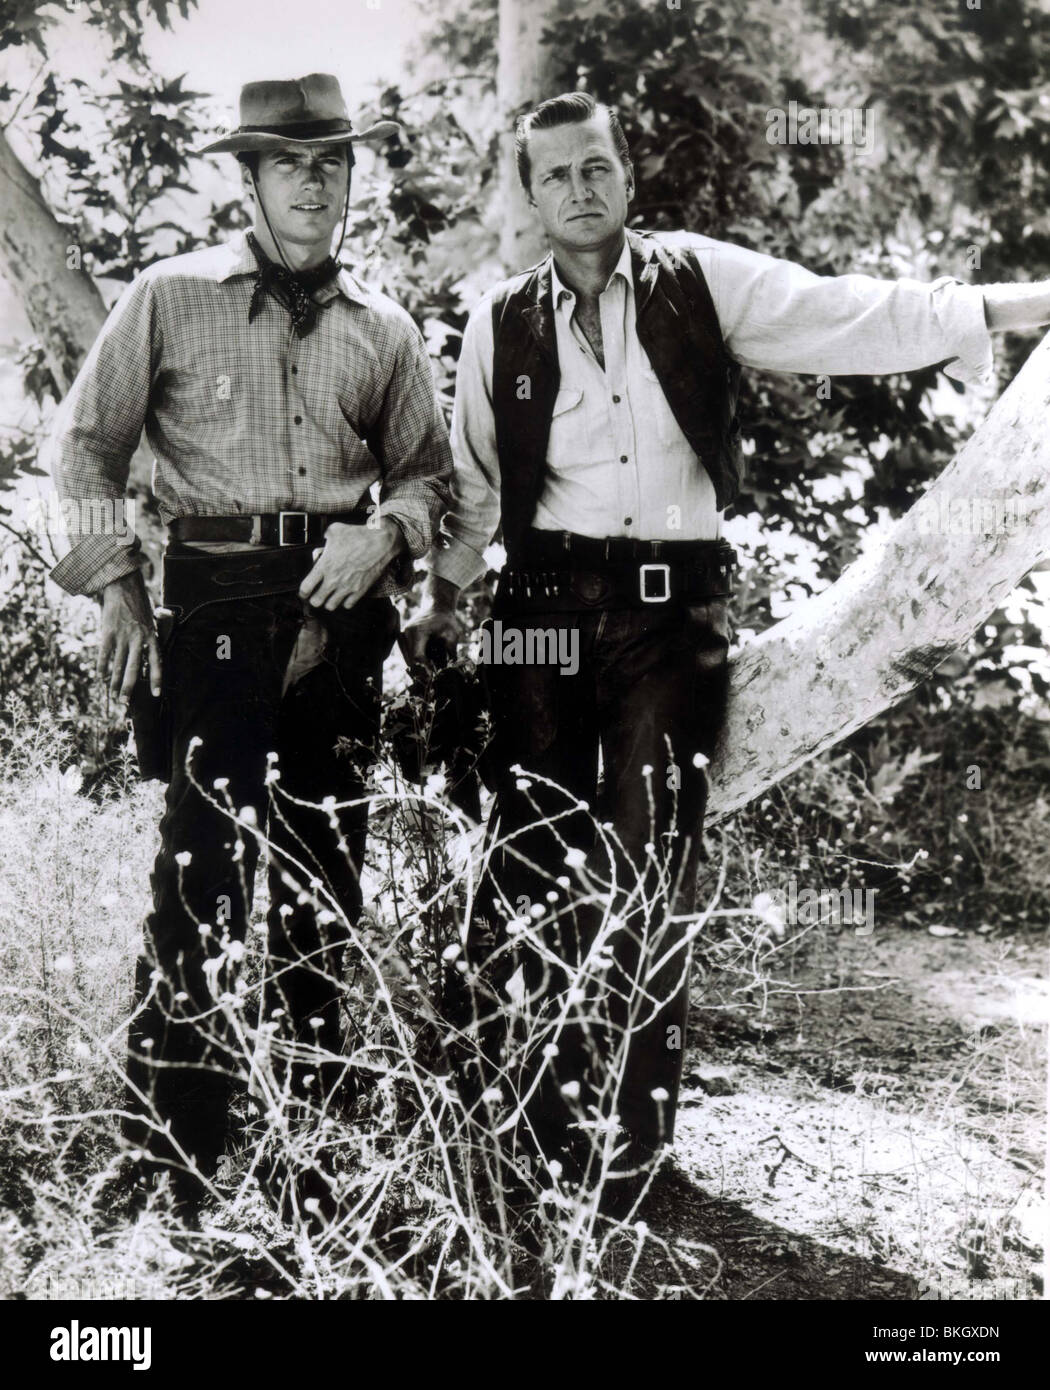 RAWHIDE (TV) CLINT EASTWOOD, ERIC FLEMING RWH 020P Photo Stock